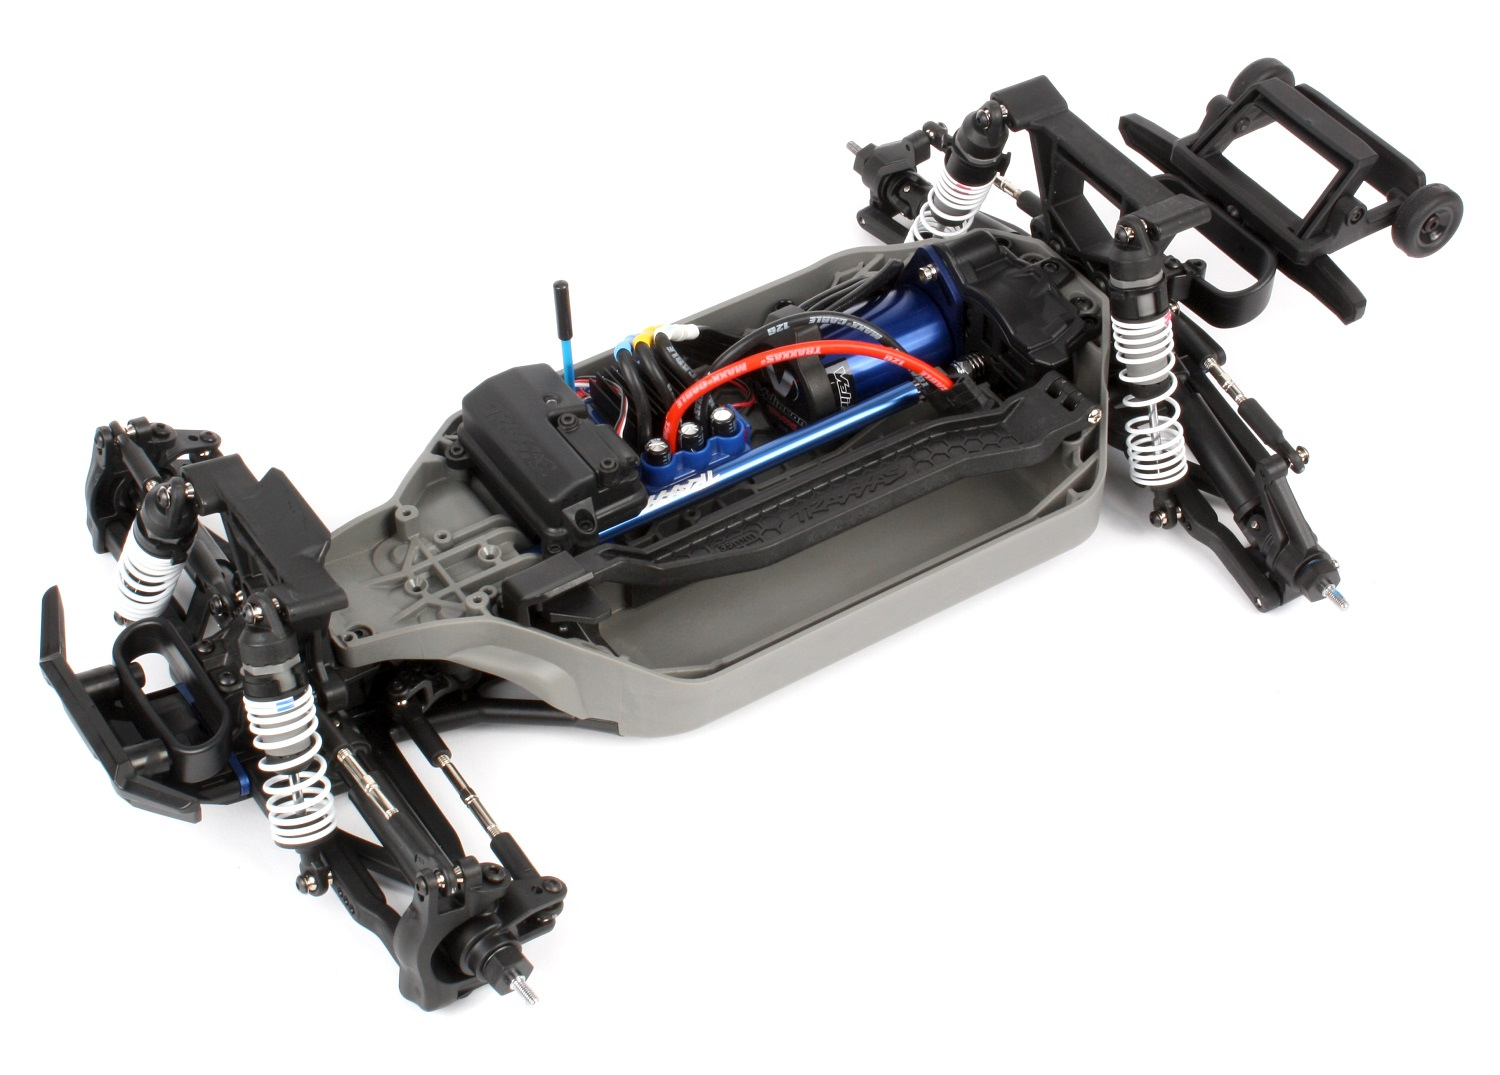 Completed chassis